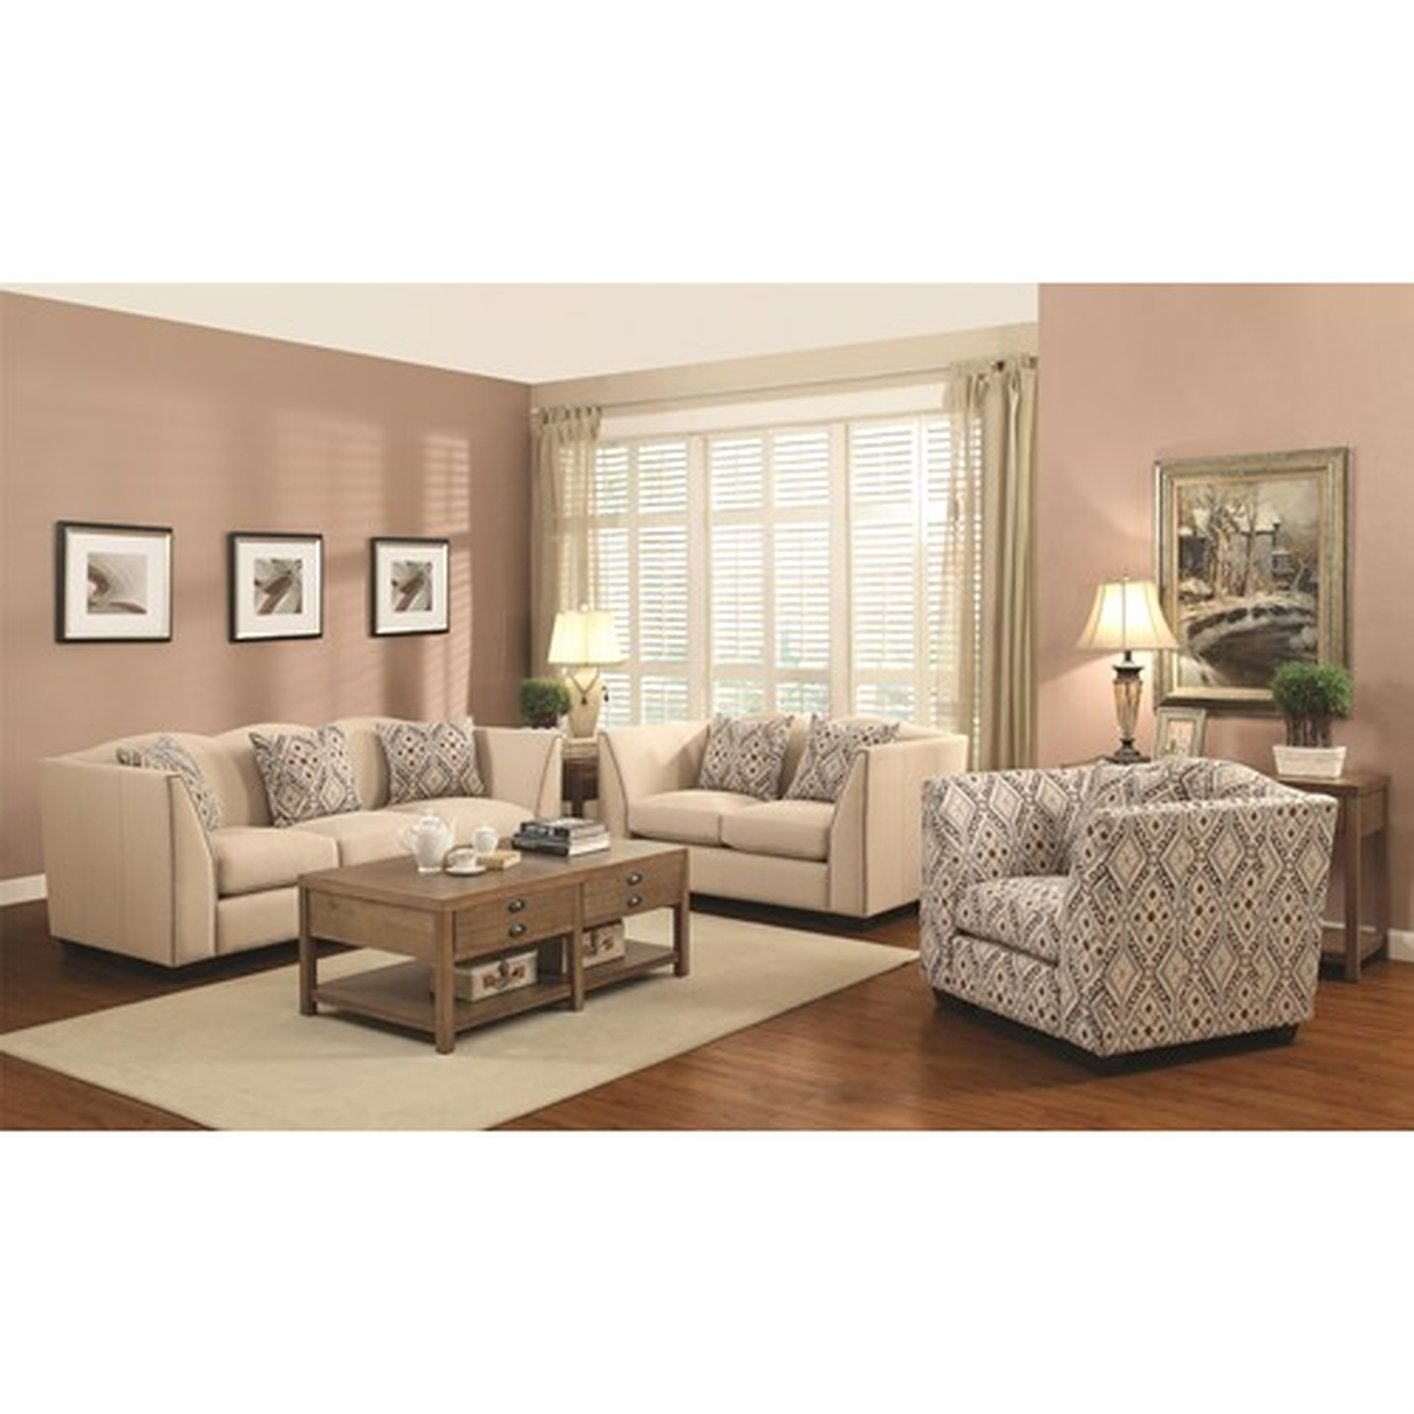 Coaster Siana 902167 Beige Fabric Accent Chair Steal A Sofa Throughout Accent Sofa Chairs (Image 7 of 15)